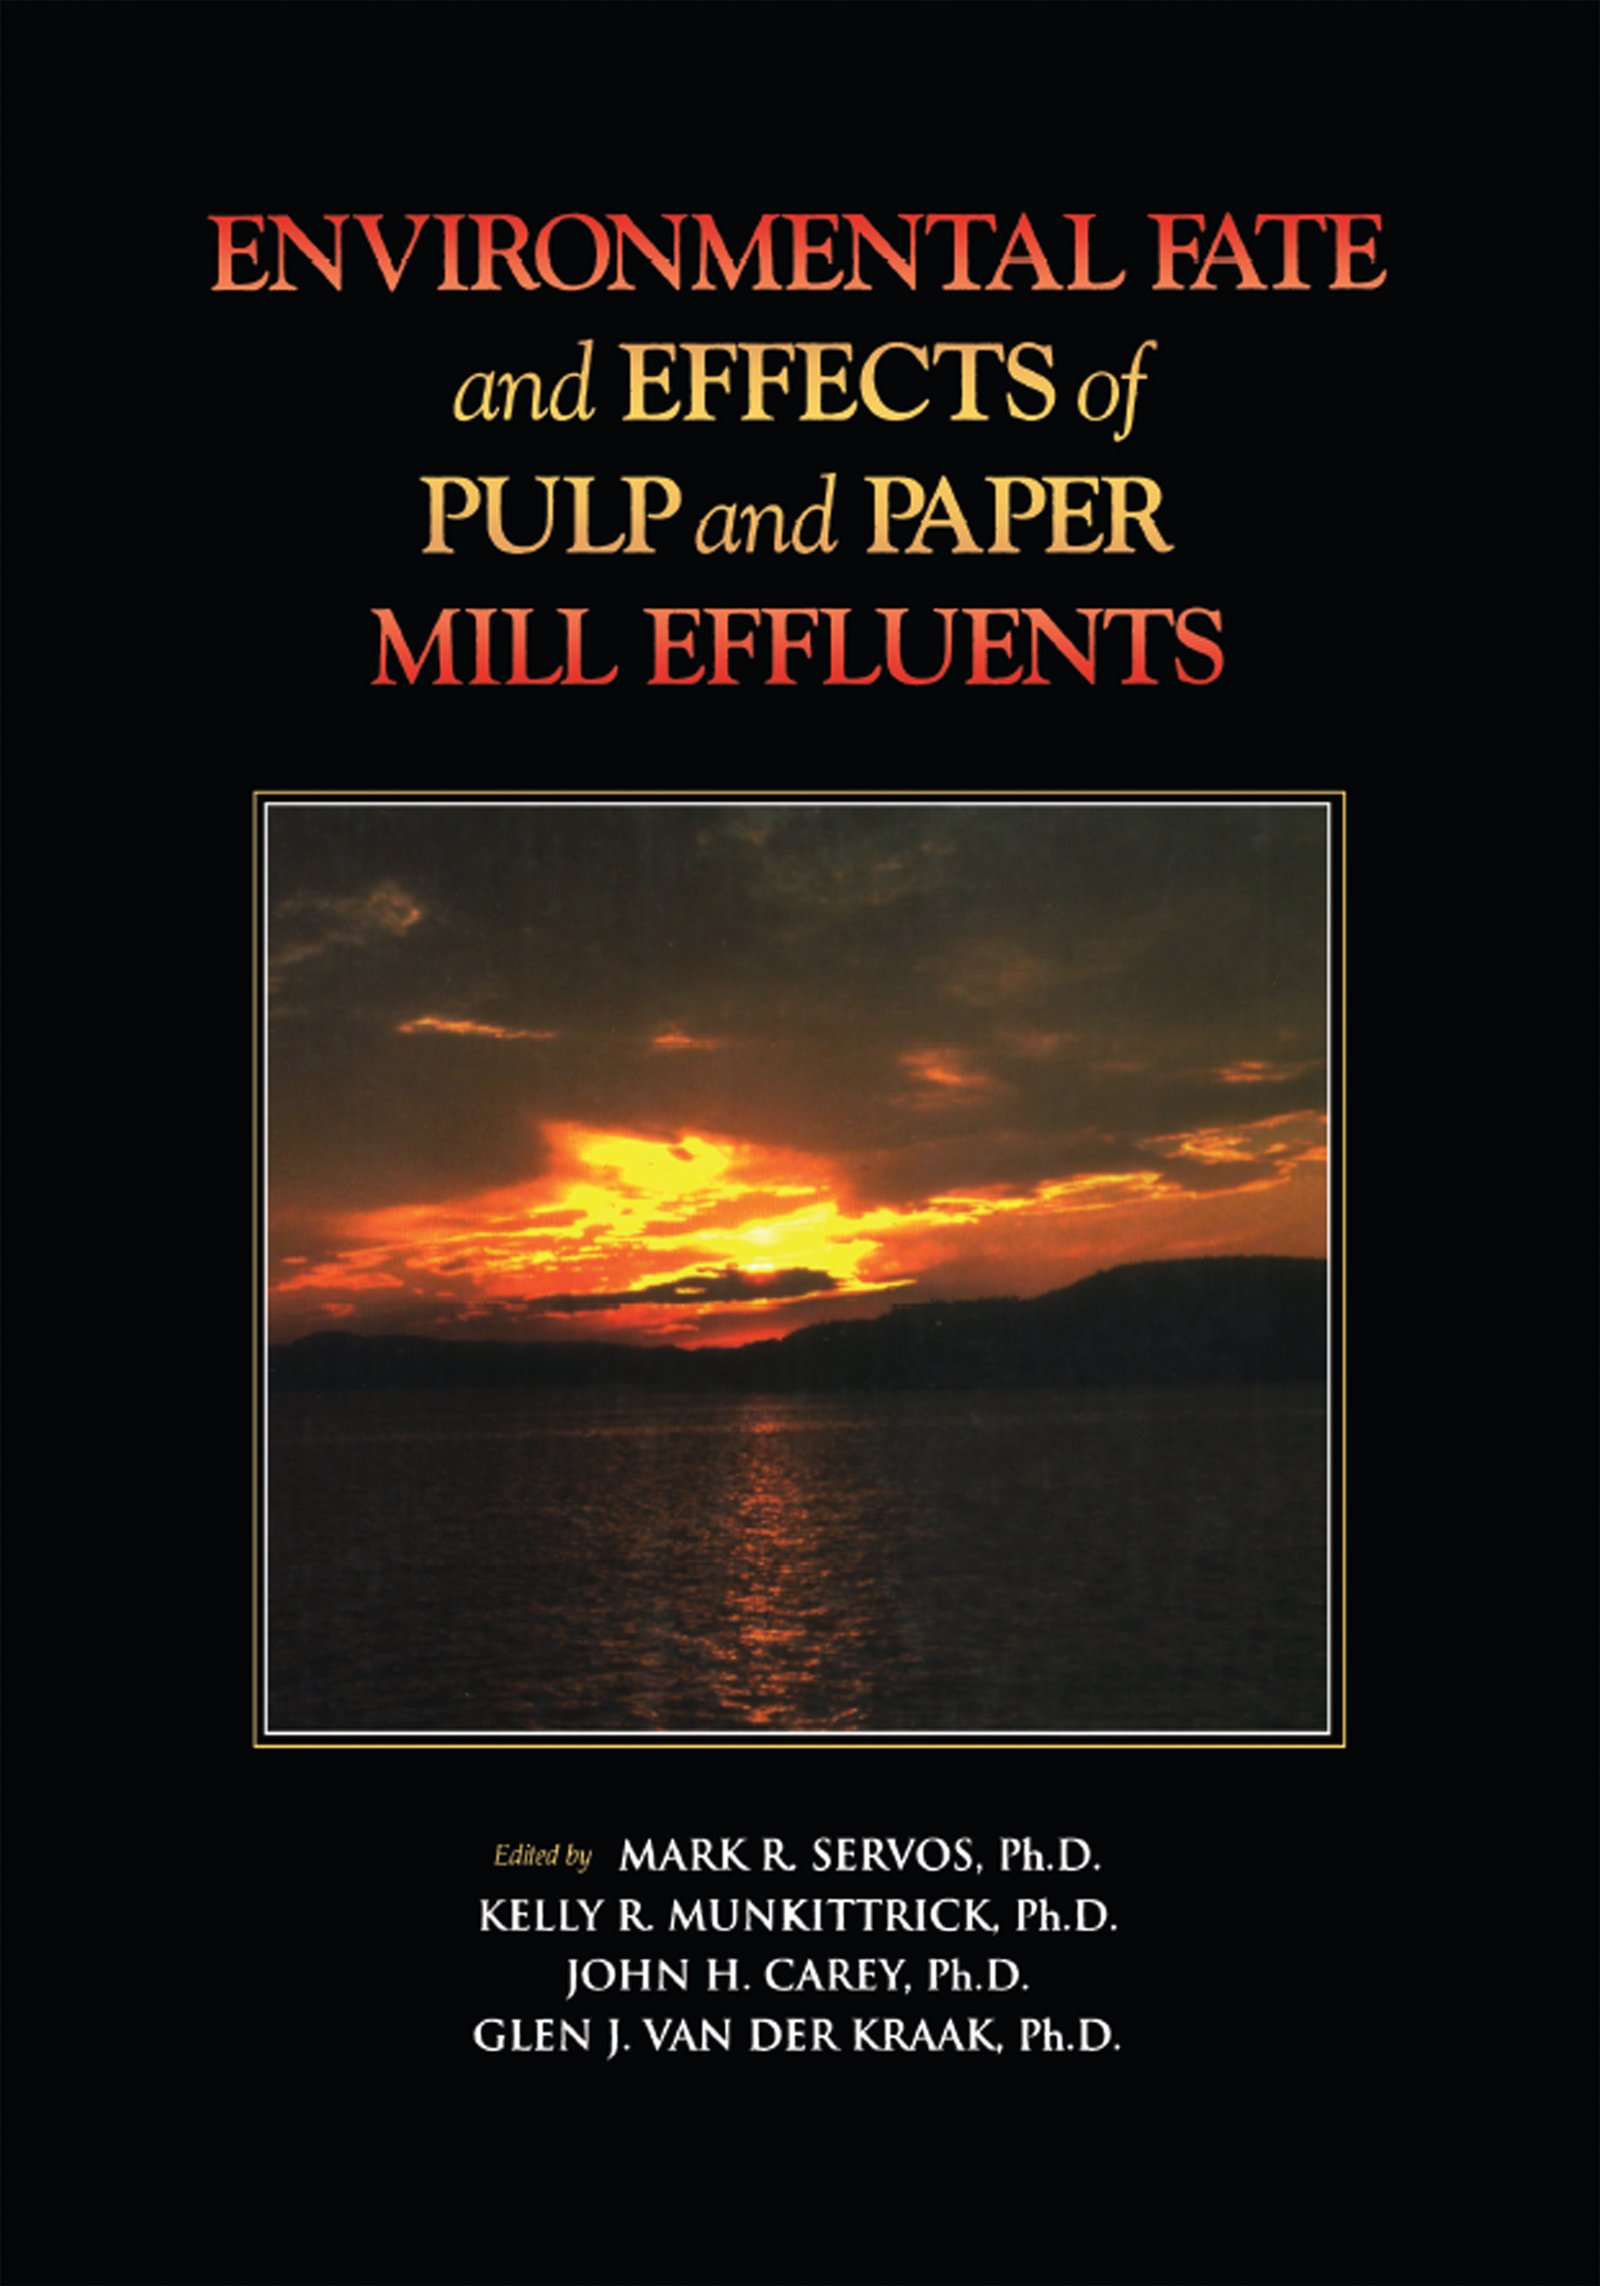 Environmental Fate and Effects of Pulp and Paper: Mill Effluents, 1st Edition (Hardback) book cover